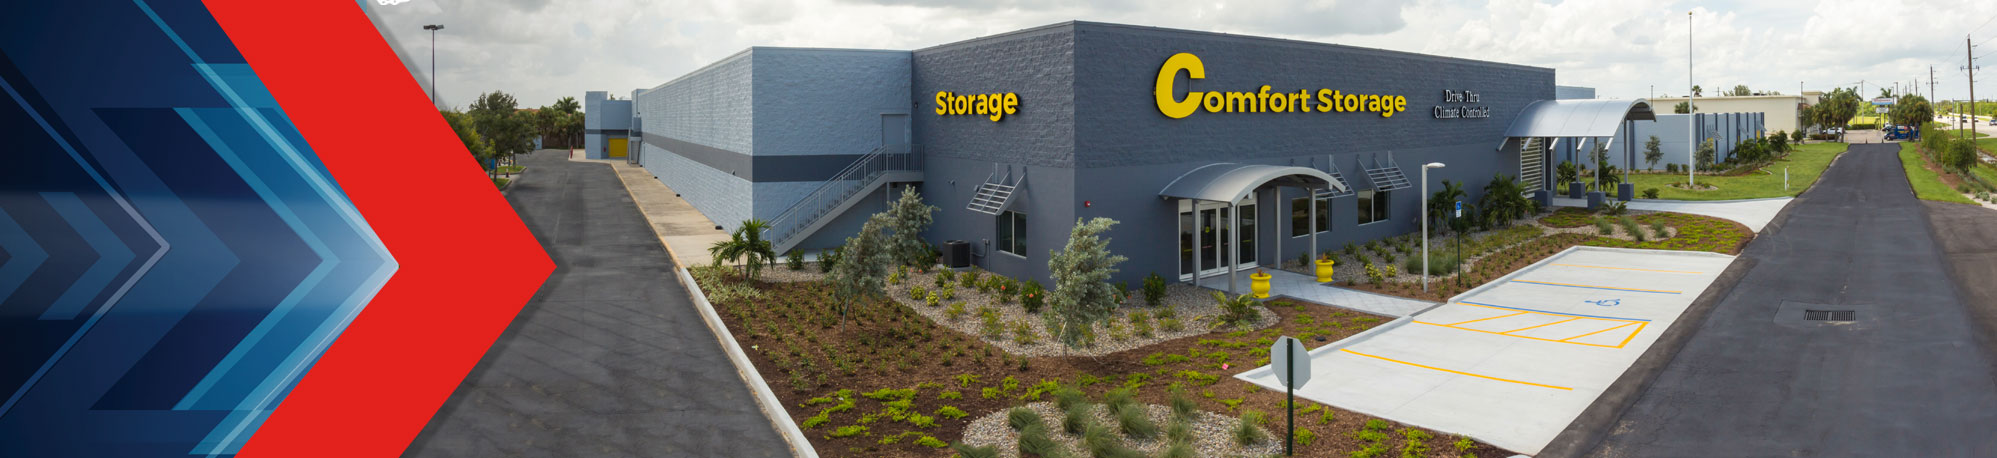 Janus R3 self-storage conversion & renovation at Comfort Storage in Punta Gorda, Florida